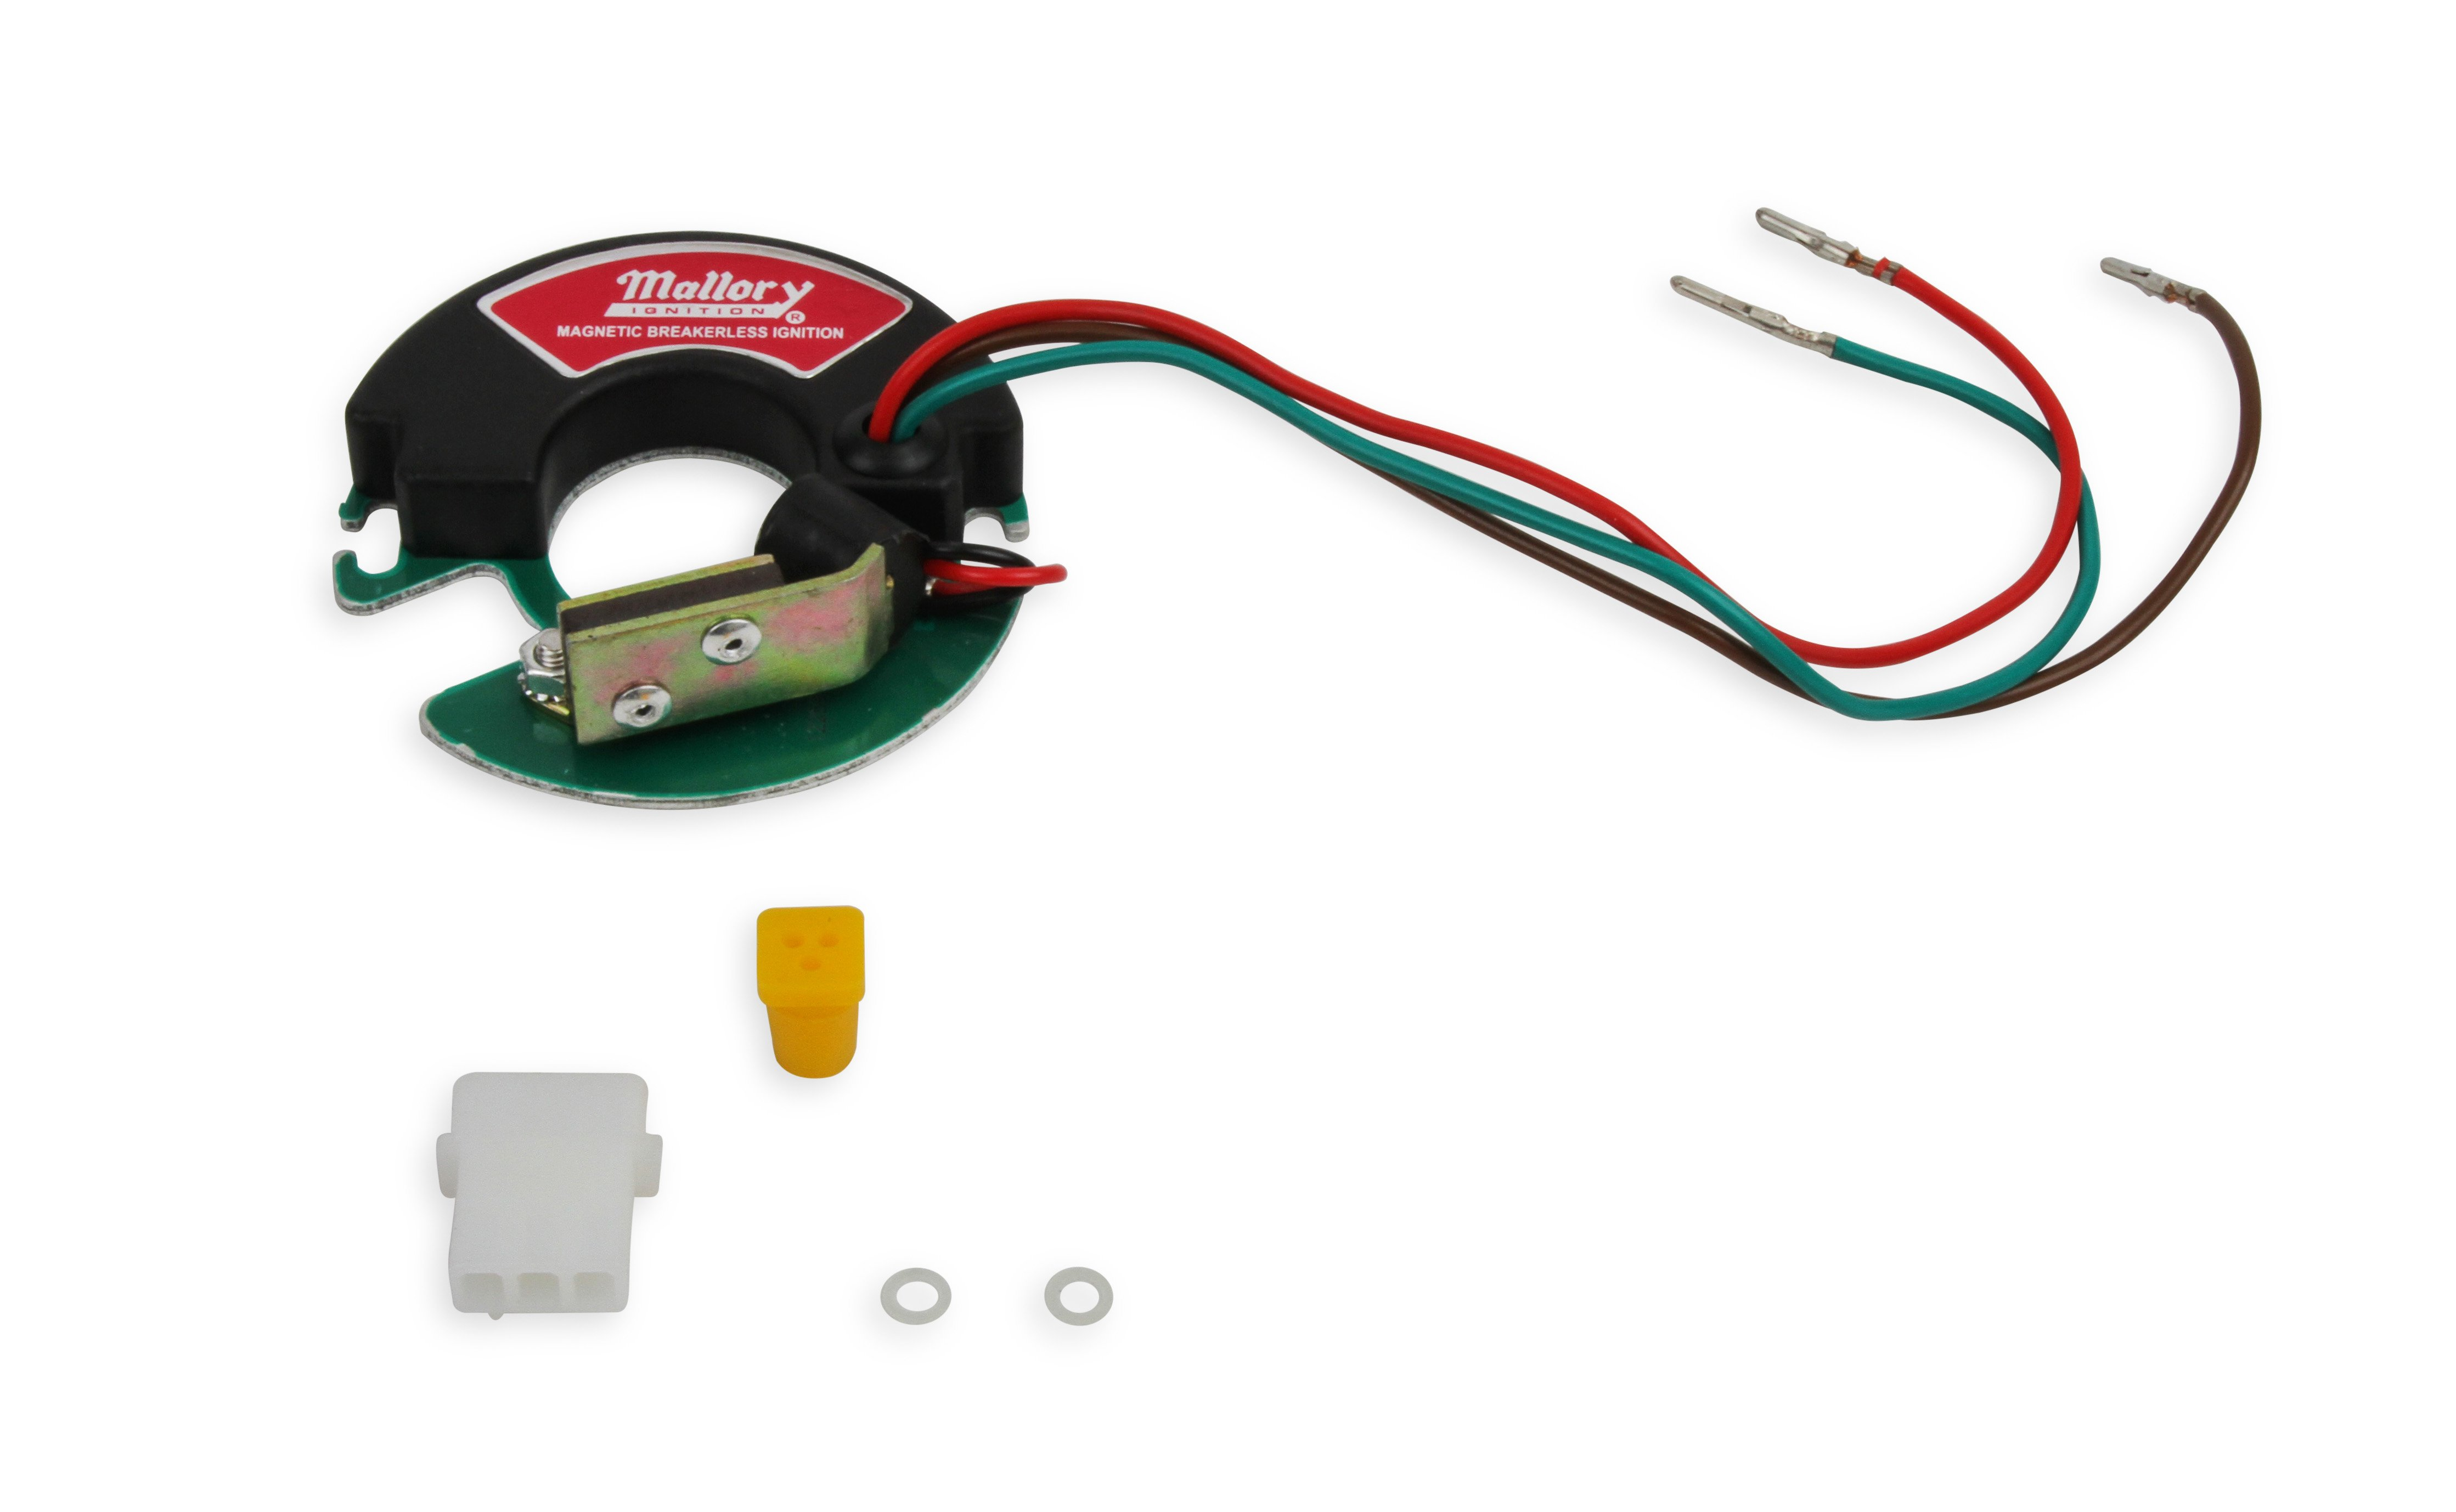 Mallory 609 Magnetic Ignition Module